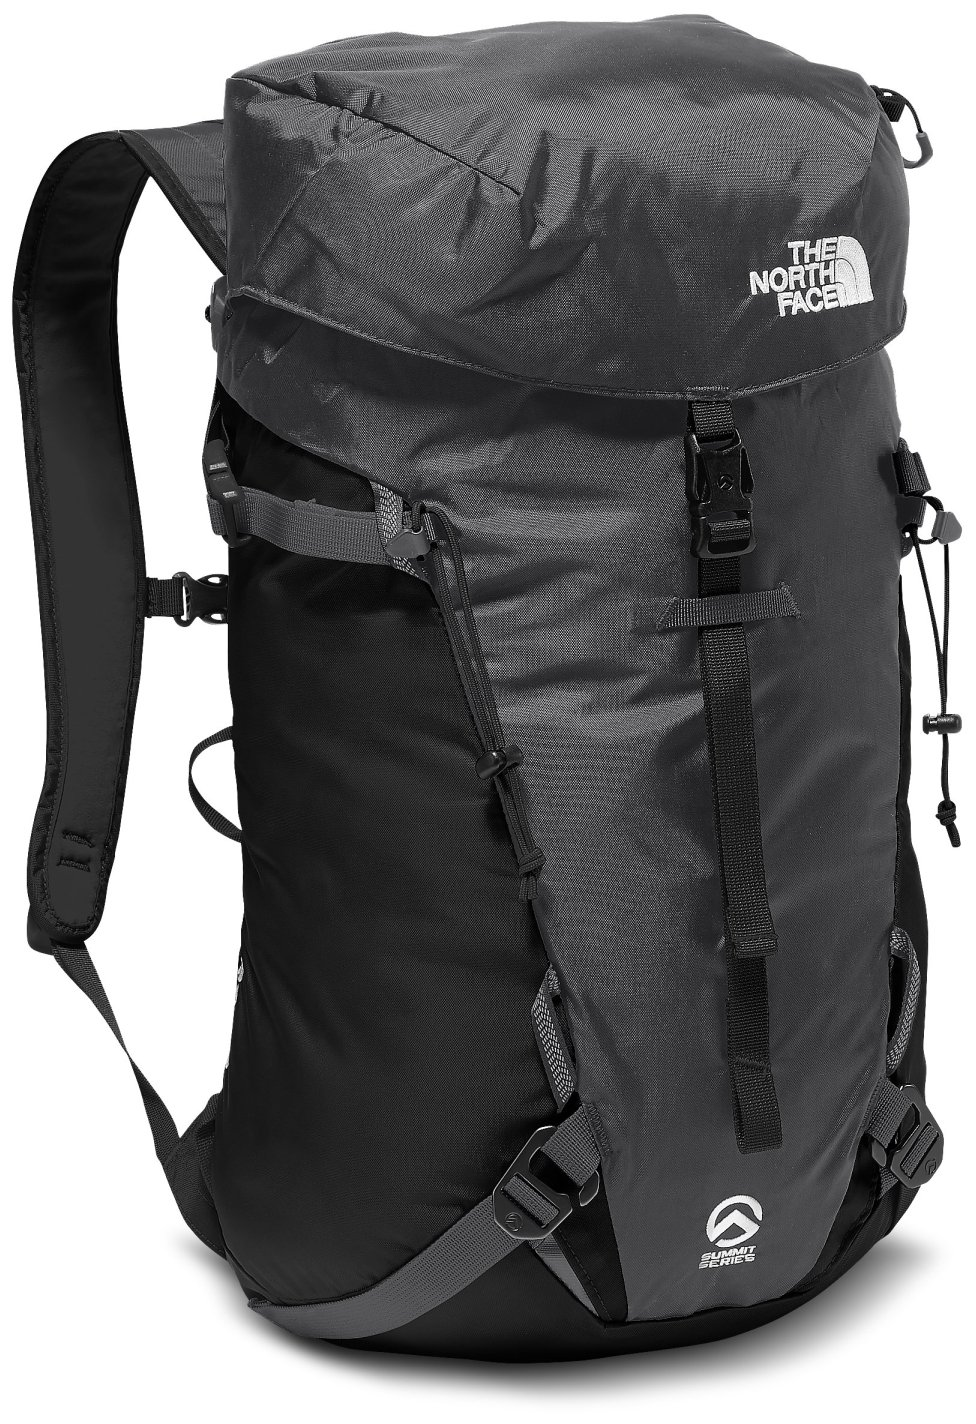 The North Face Verto 18 Backpack - TNF Black/Asphalt Grey by The North Face